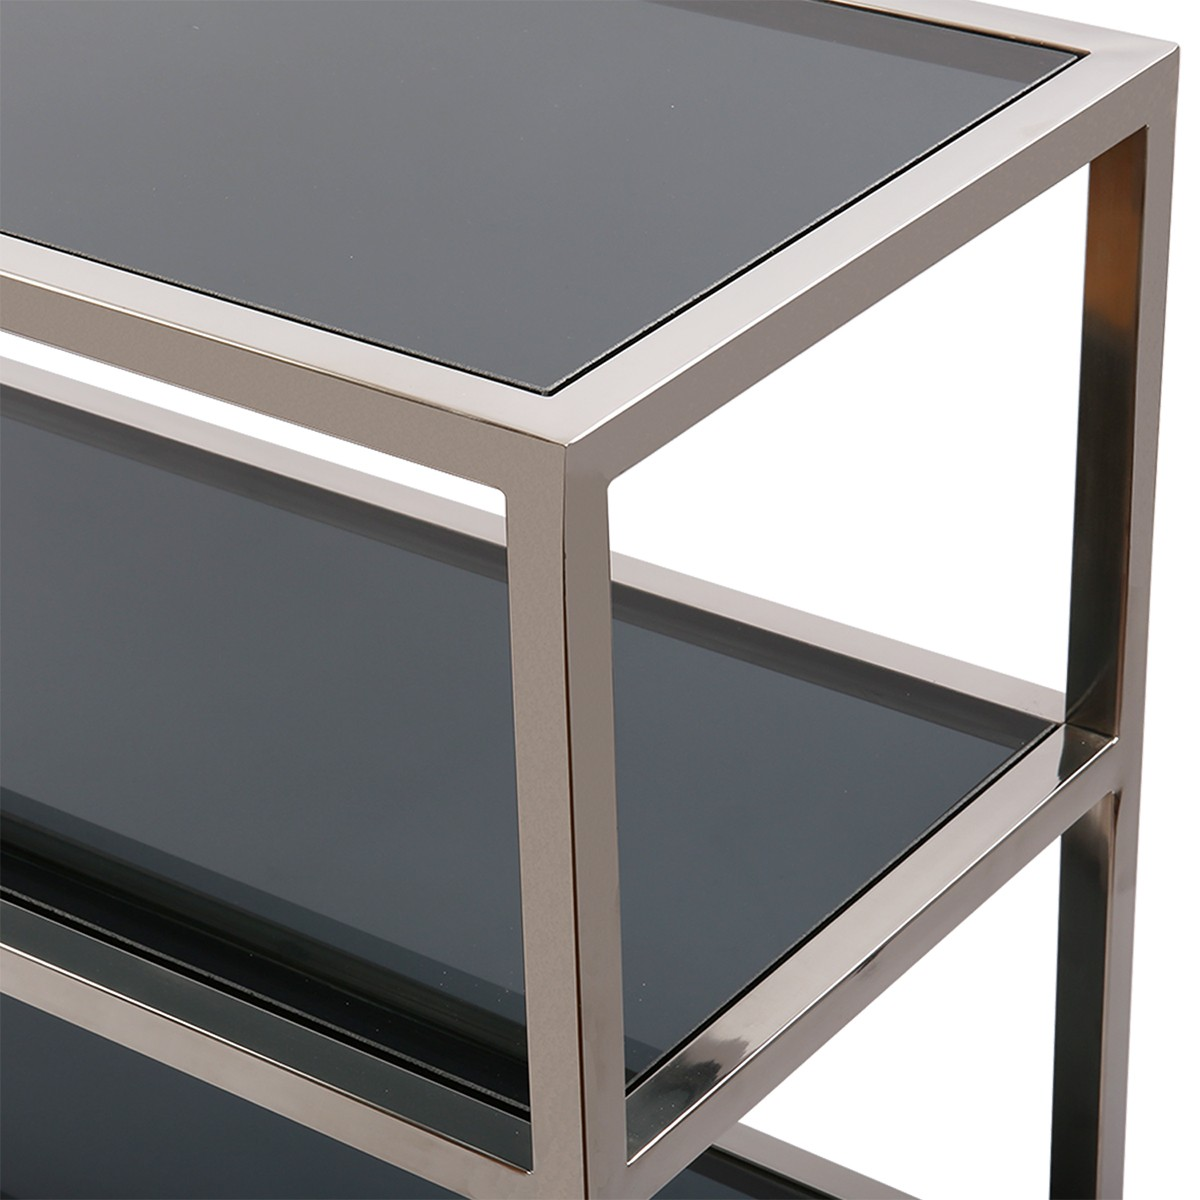 sideboard glas metall wandtiisch verchromt metall glasplatte breite 160 cm. Black Bedroom Furniture Sets. Home Design Ideas